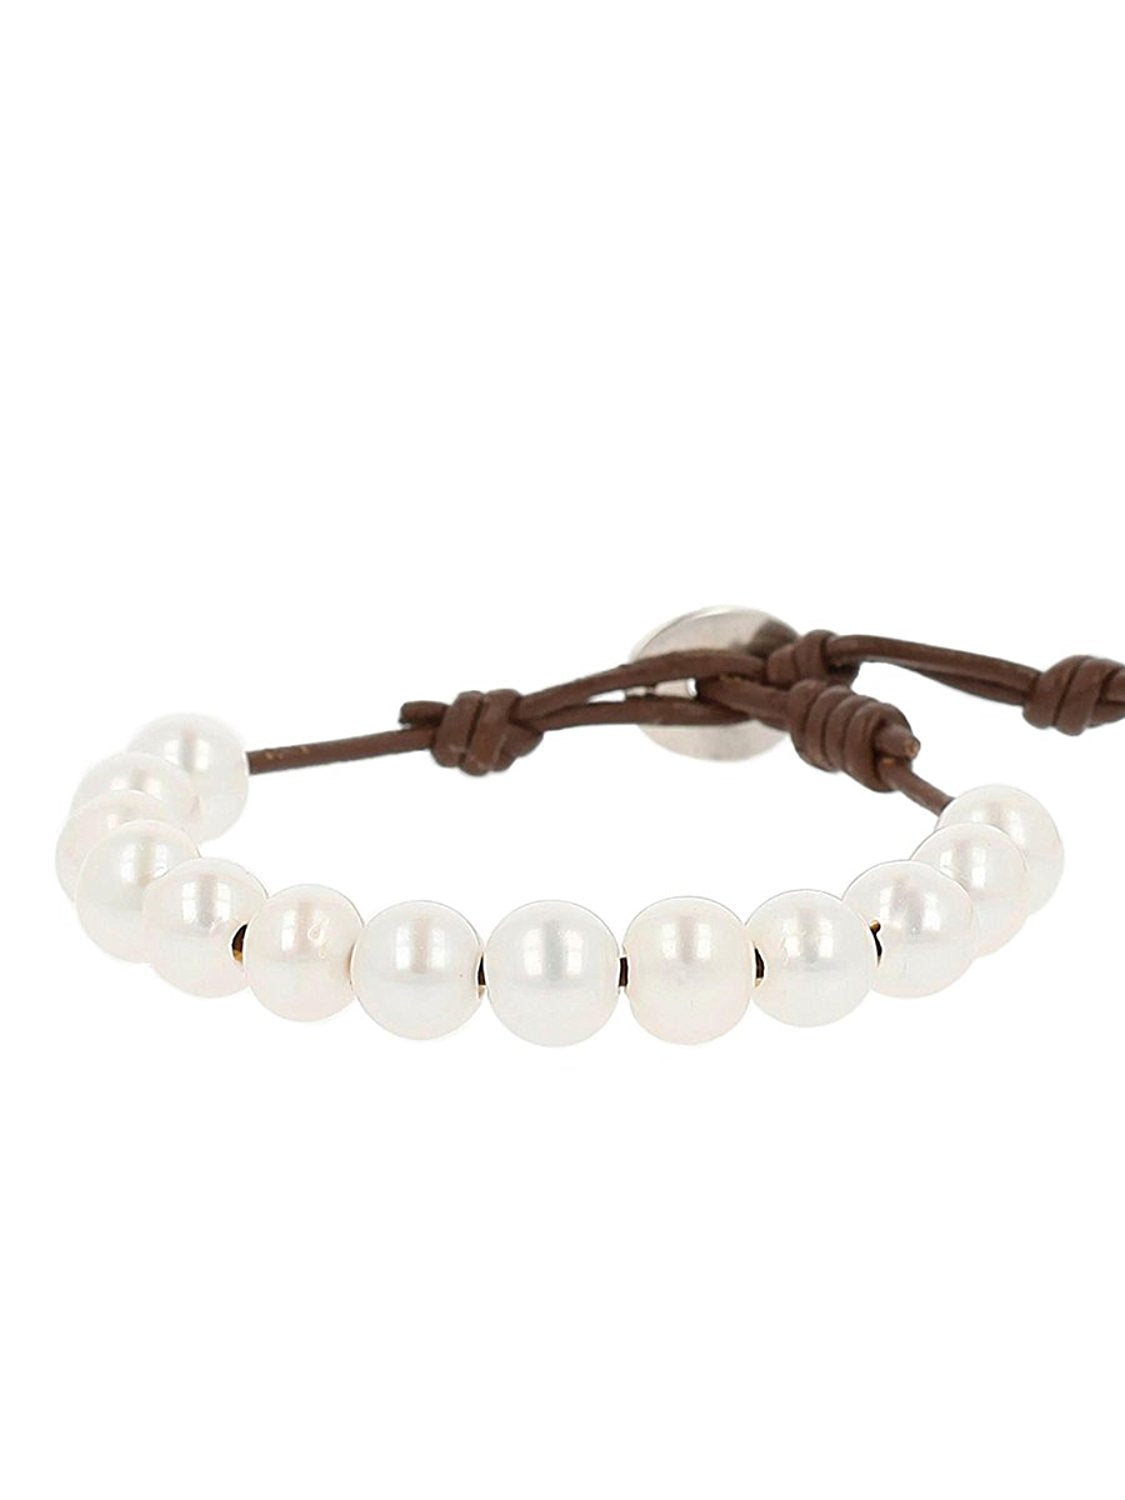 Chan Luu White Freshwater Cultured Pearls On A Brown Leather Adjustable Bracelet